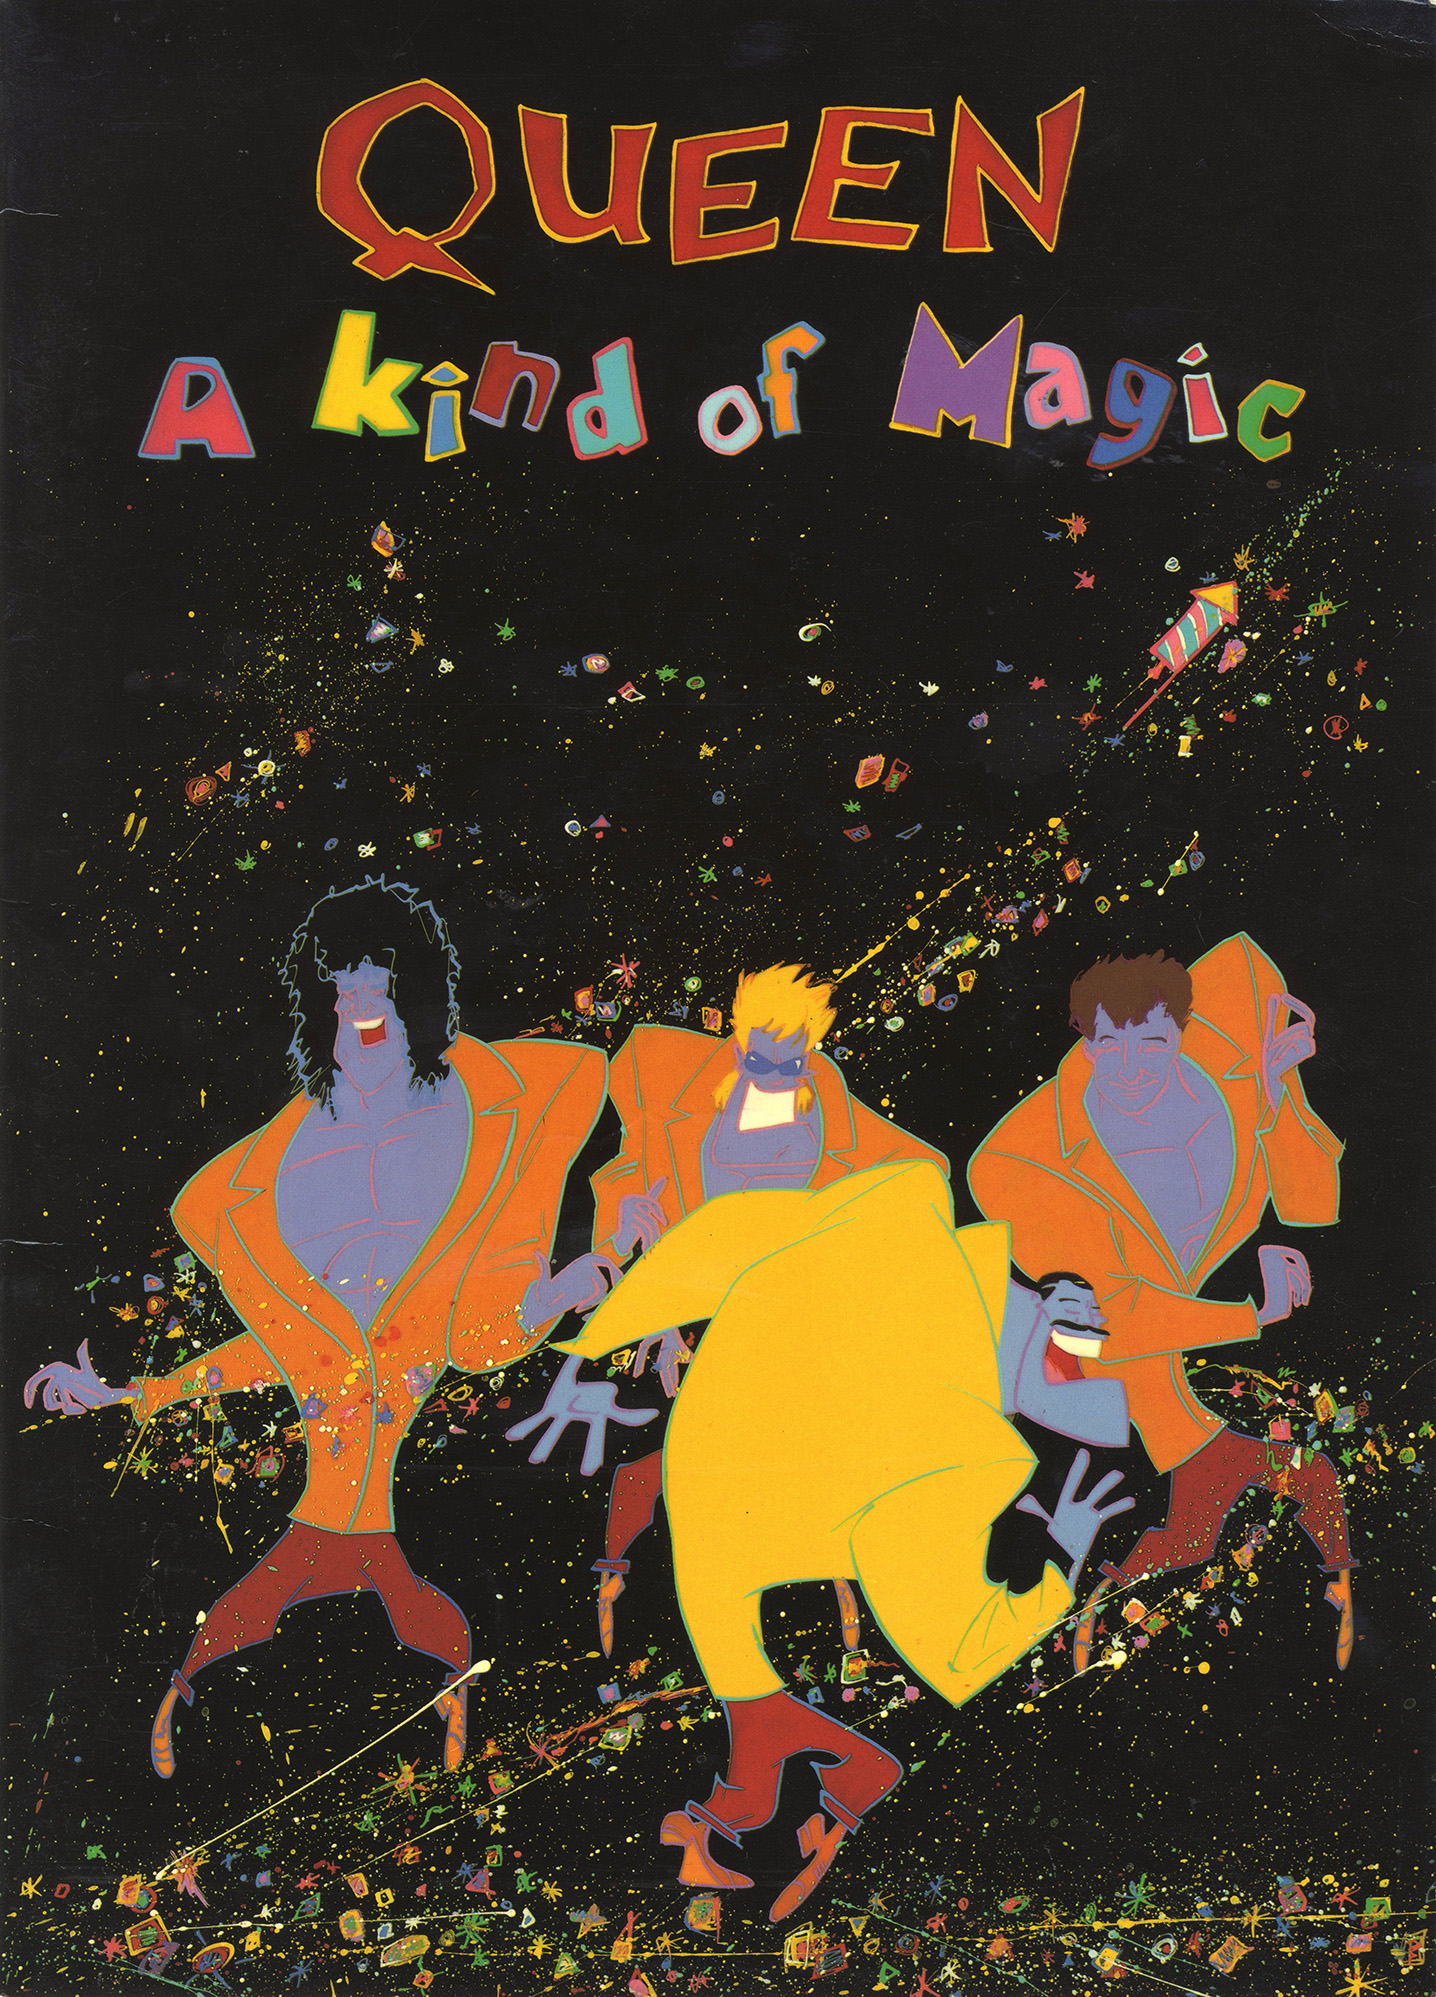 A Kind Of Magic tour program (UK)